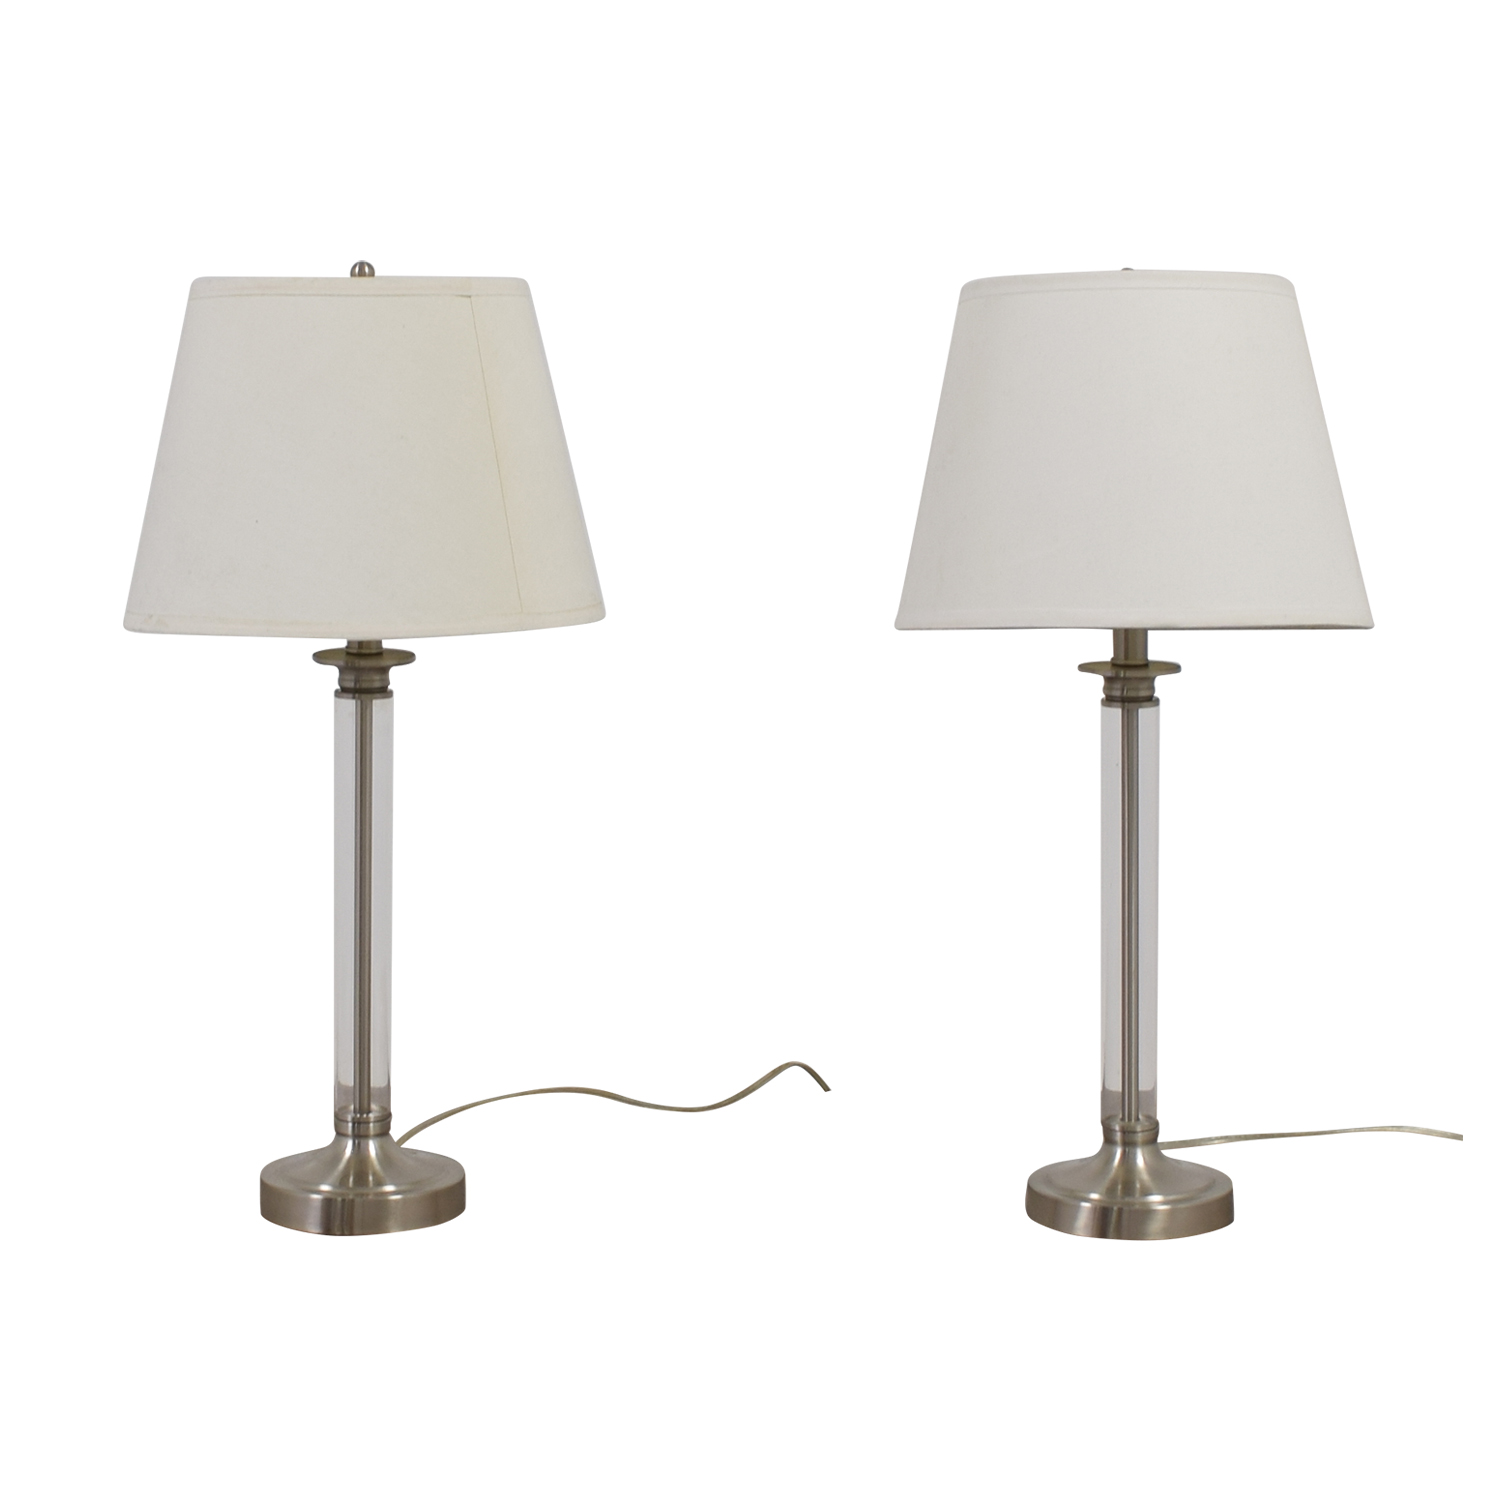 Bed Table Lamps 62 Off Bed Bath Beyond Bed Bath Beyond End Table Lamps Decor